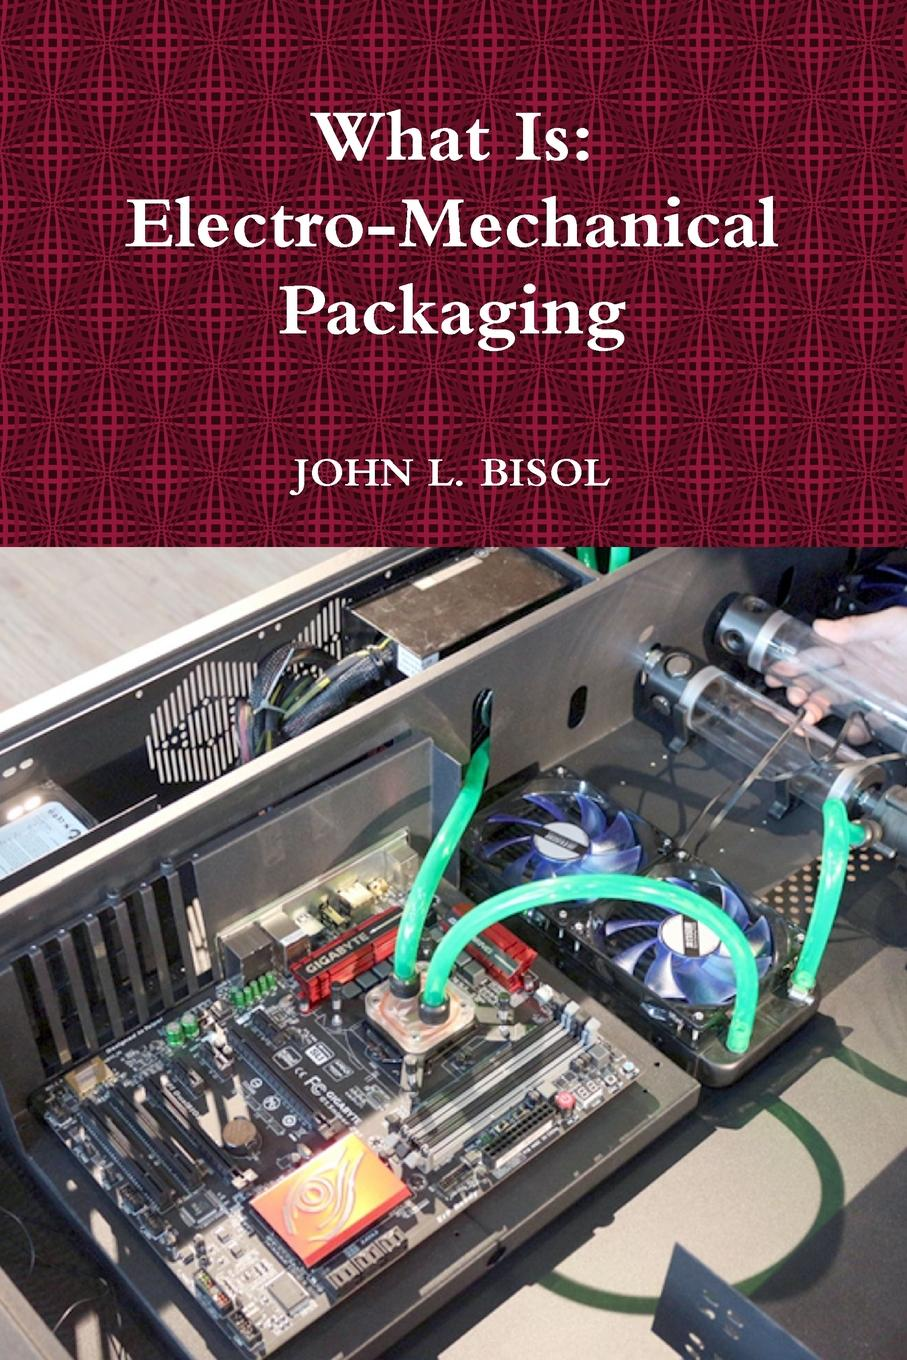 JOHN L. BISOL What Is. Electro-Mechanical Packaging unique packaging